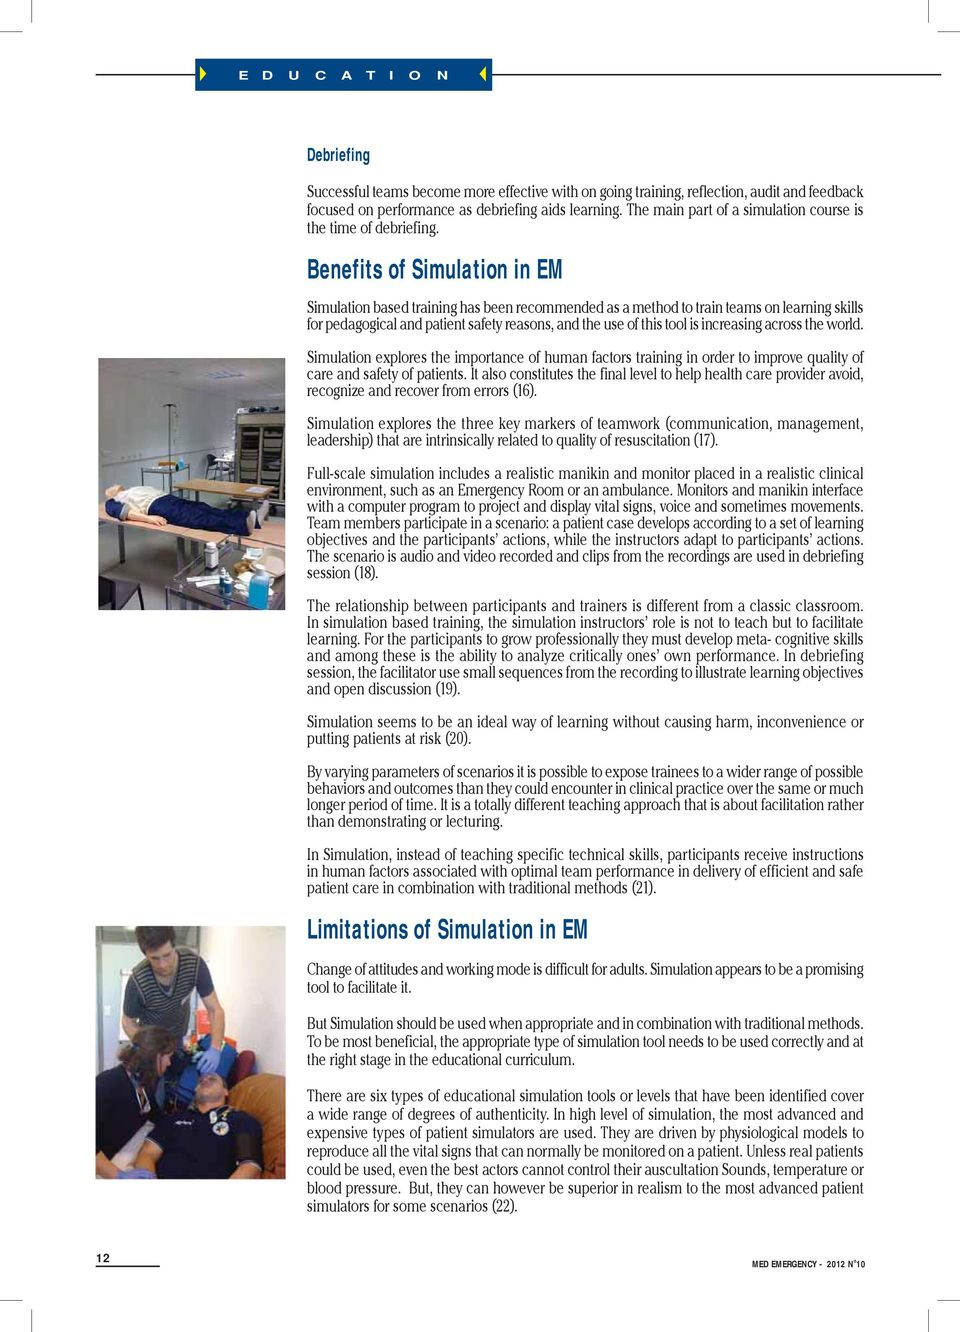 Benefits of Simulation in EM Simulation based training has been recommended as a method to train teams on learning skills for edagogical and atient safety reasons, and the use of this tool is